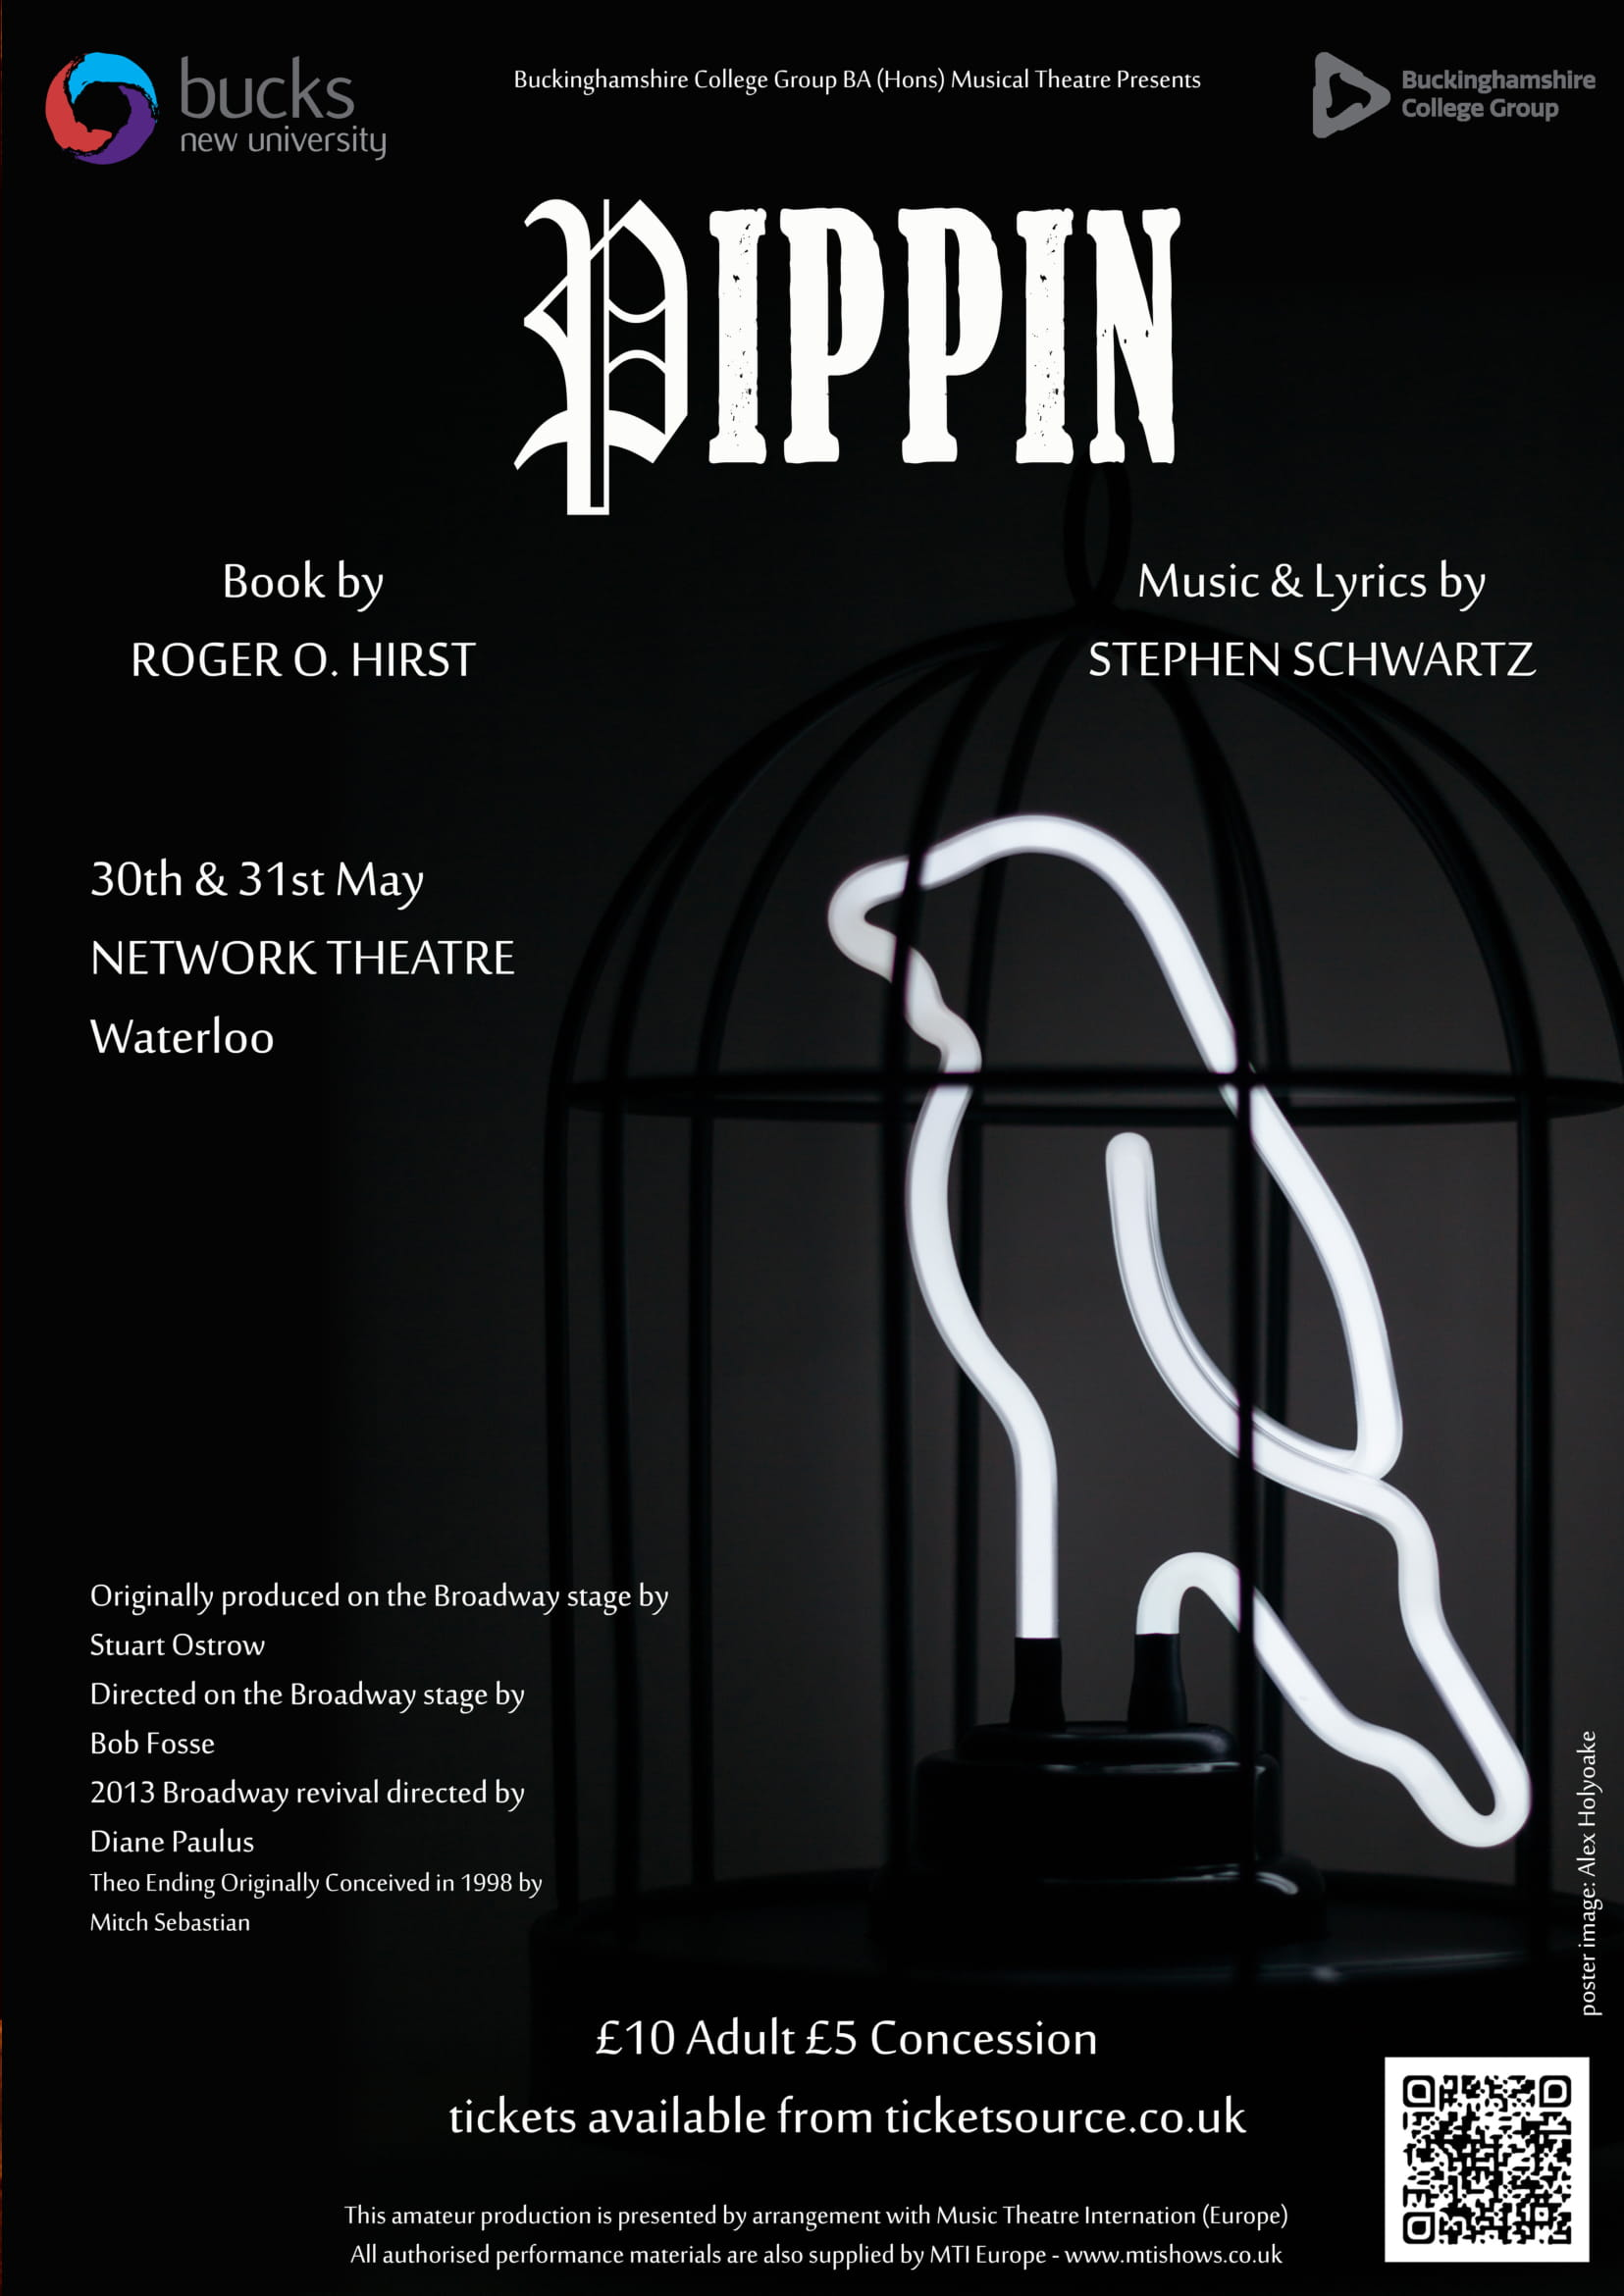 Previous Show - Pippin (CLICK TO VIEW)